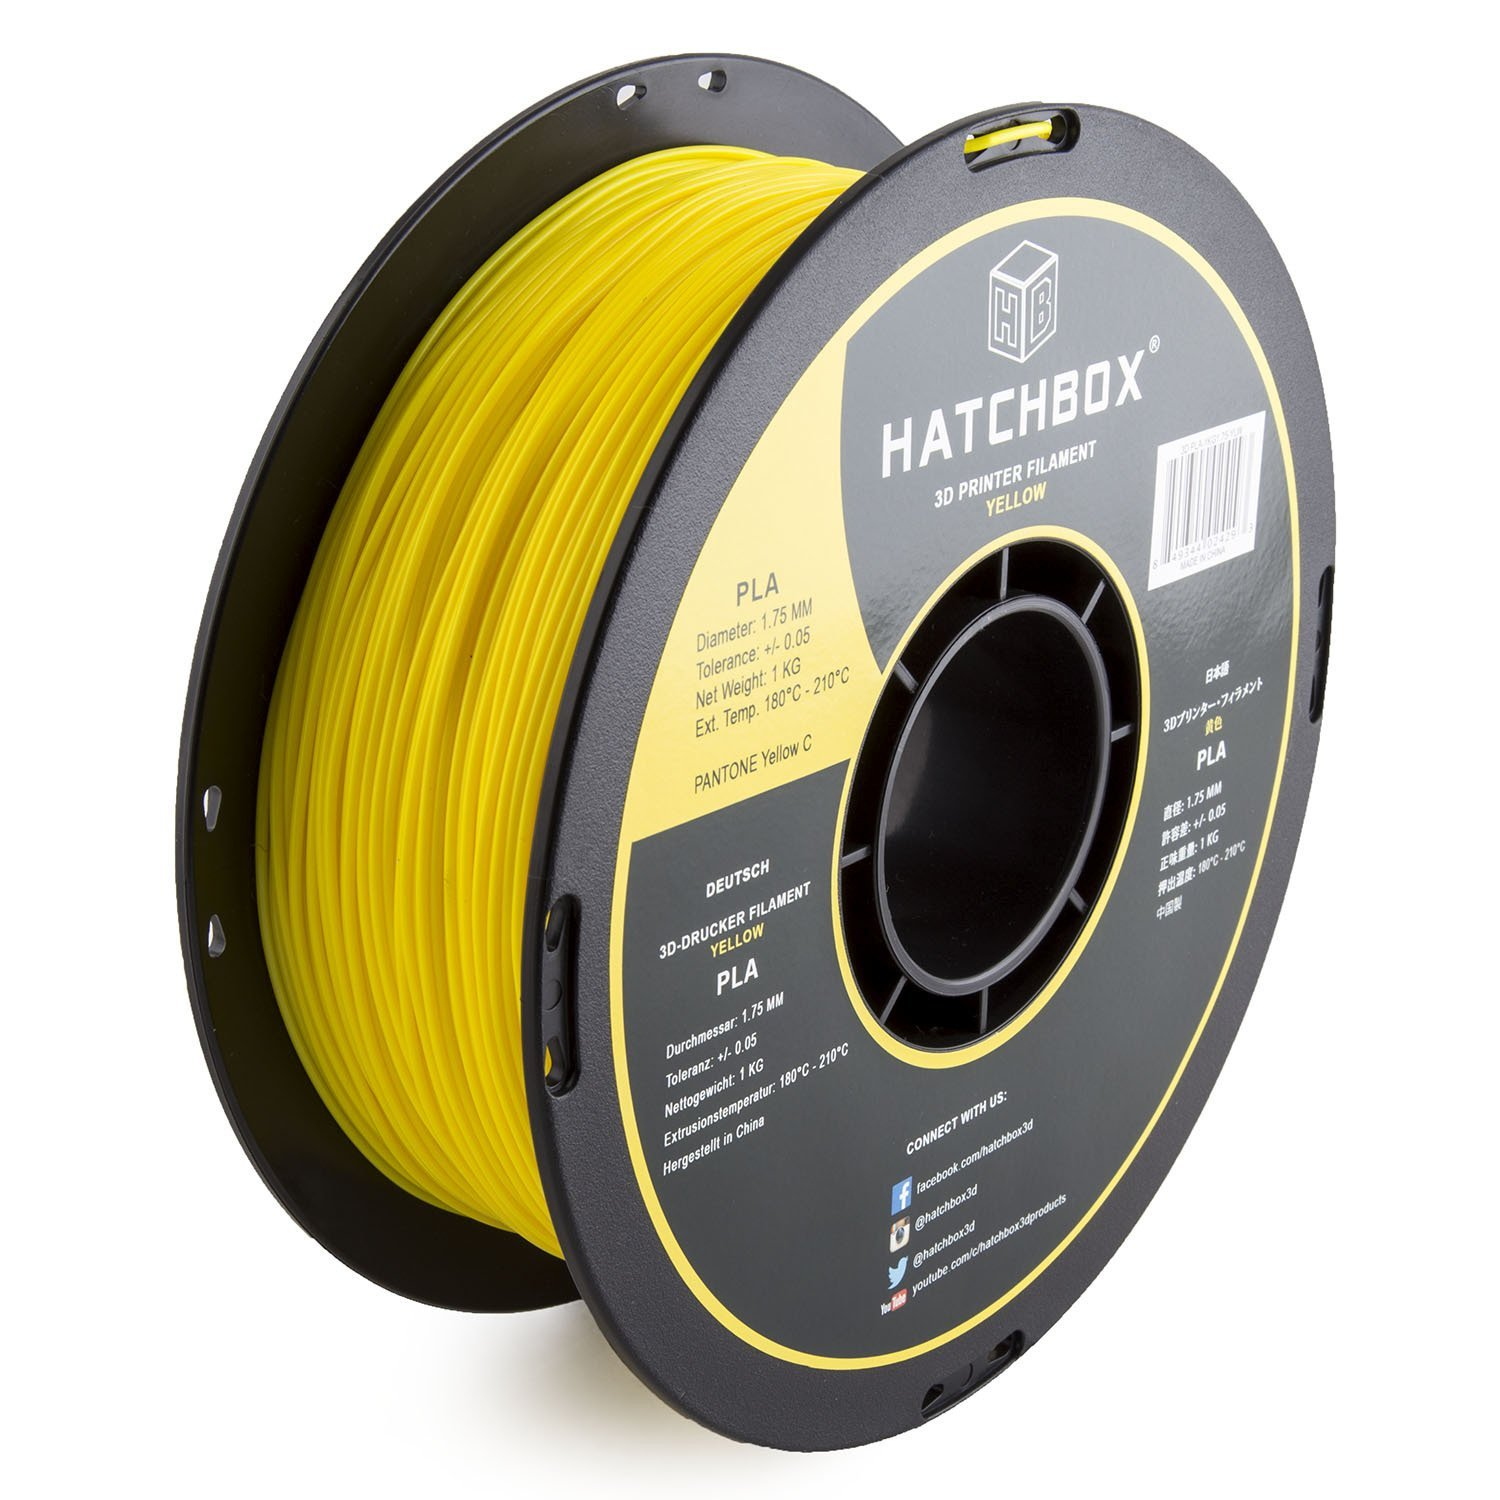 HATCHBOX PETG 3D Printer Filament